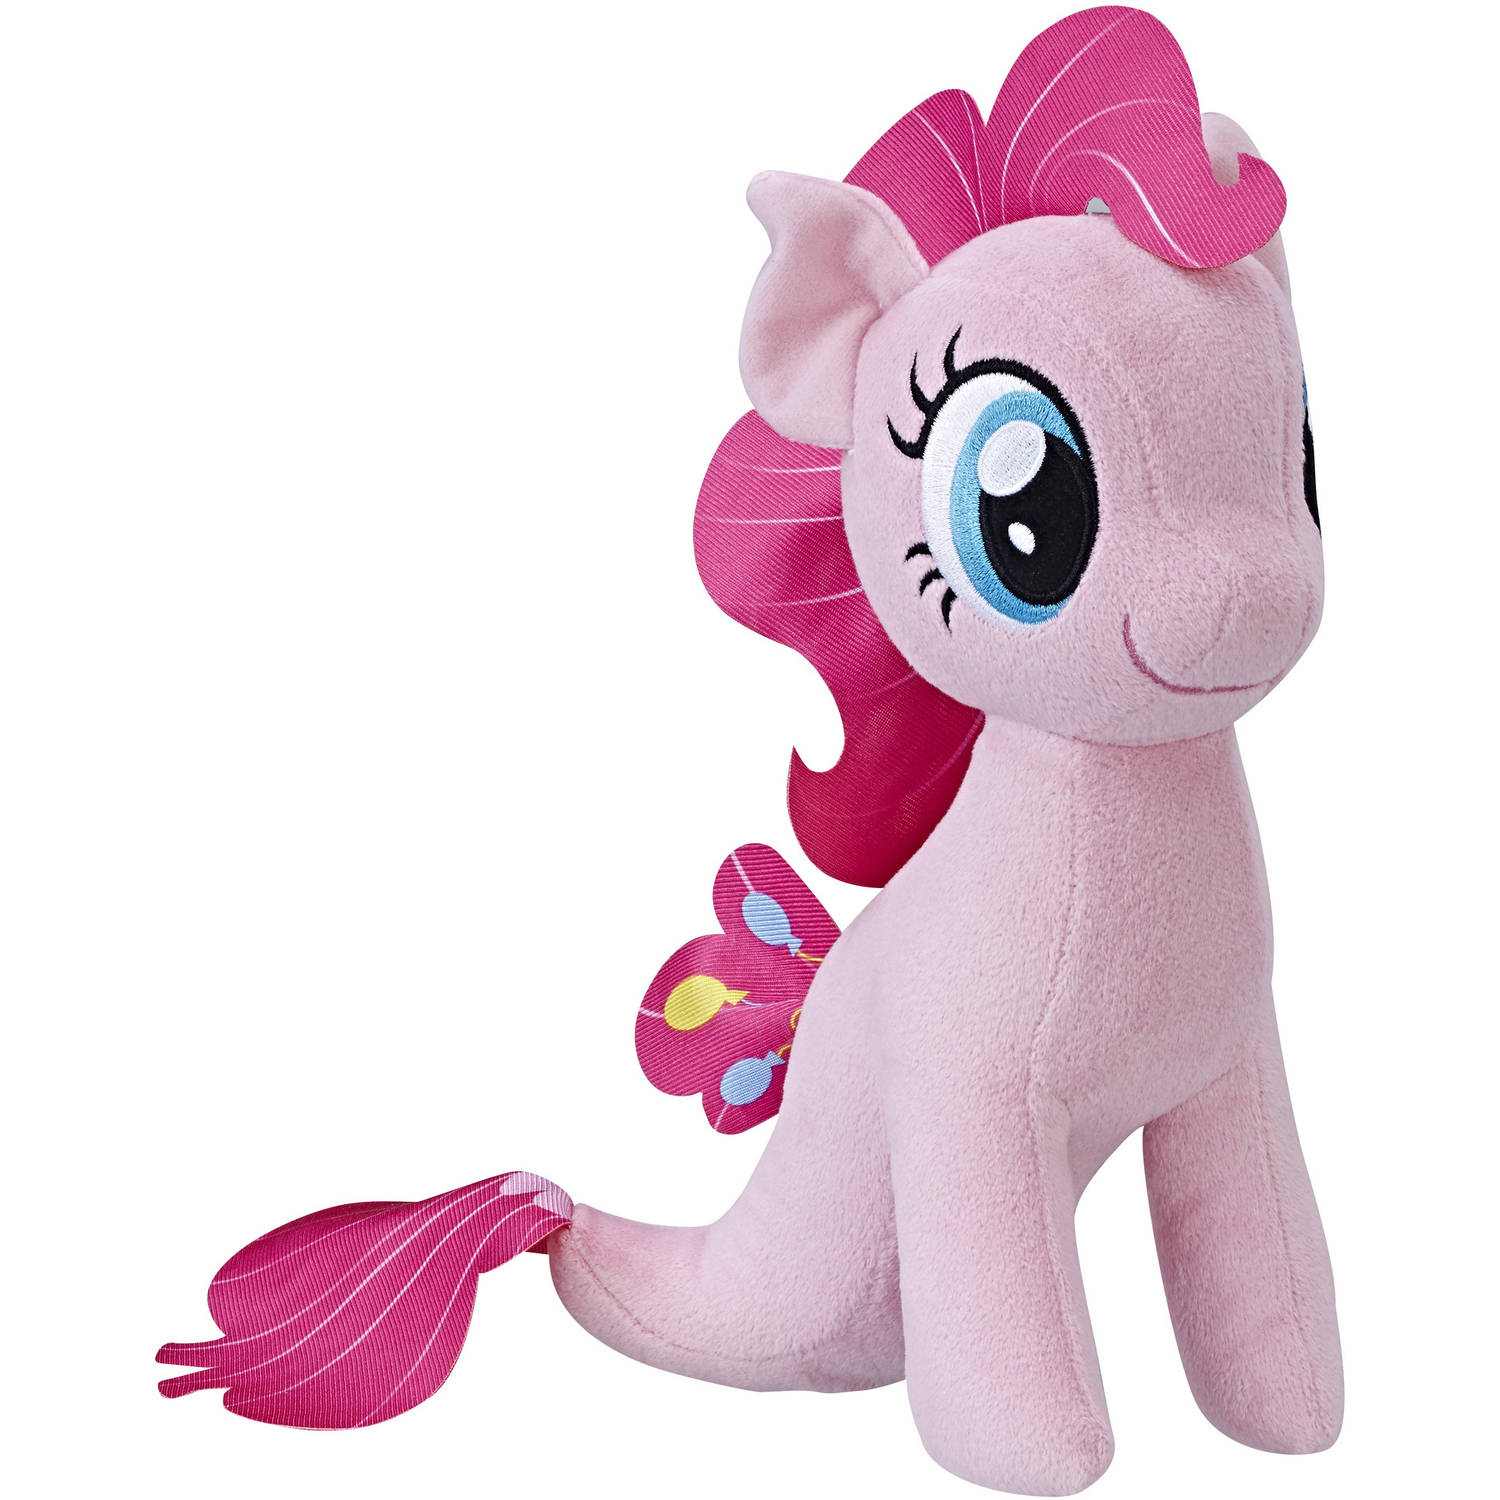 My Little Pony The Movie Pinkie Pie Sea Pony 10 Soft Plush